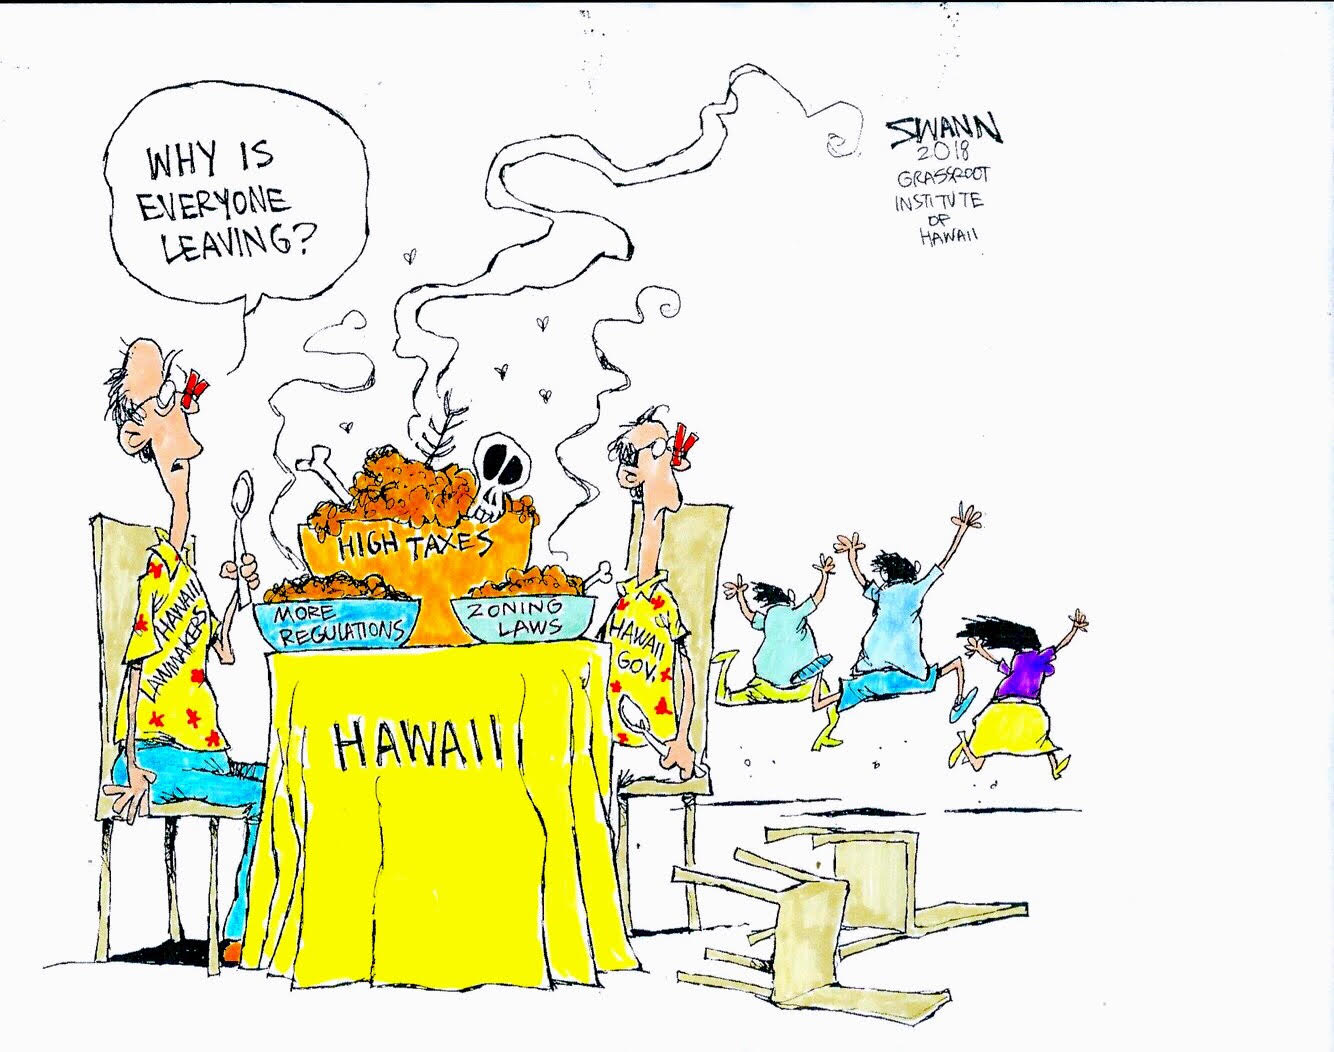 Why are people leaving Hawaii?